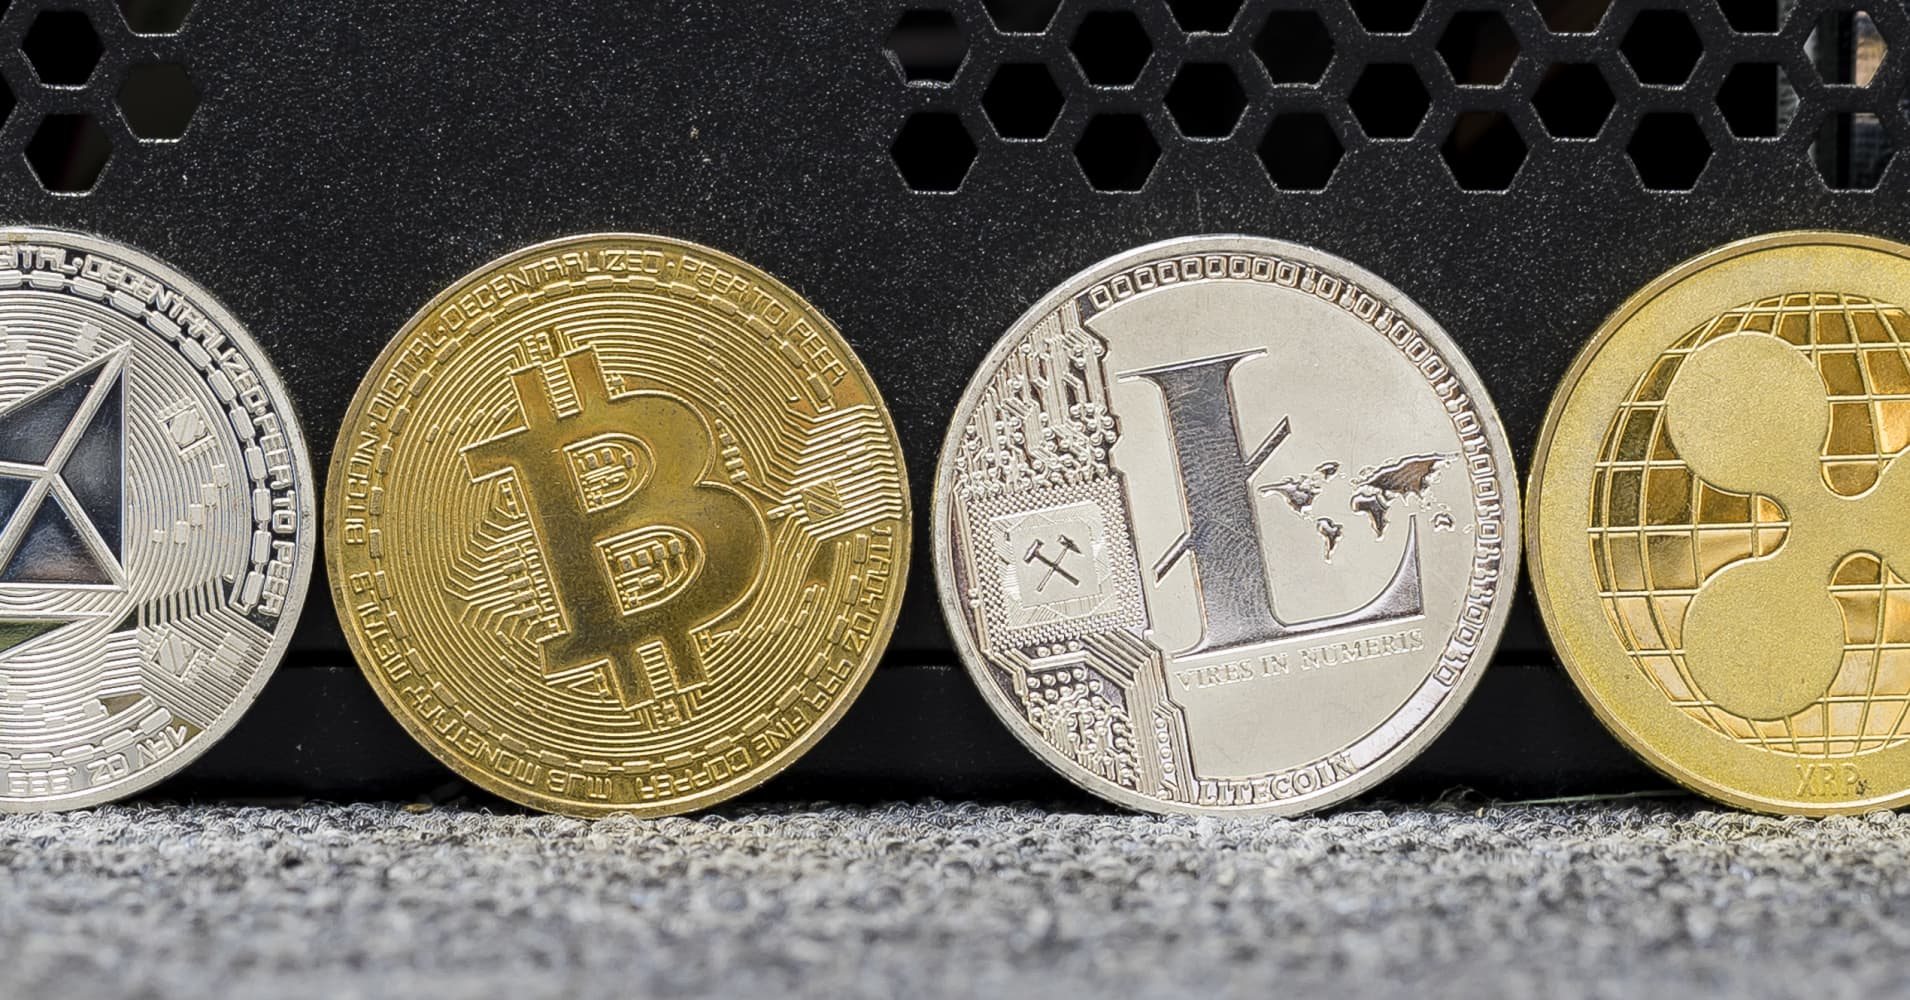 It's not 'unreasonable' for businesses to create and use their own cryptocurrencies, expert says